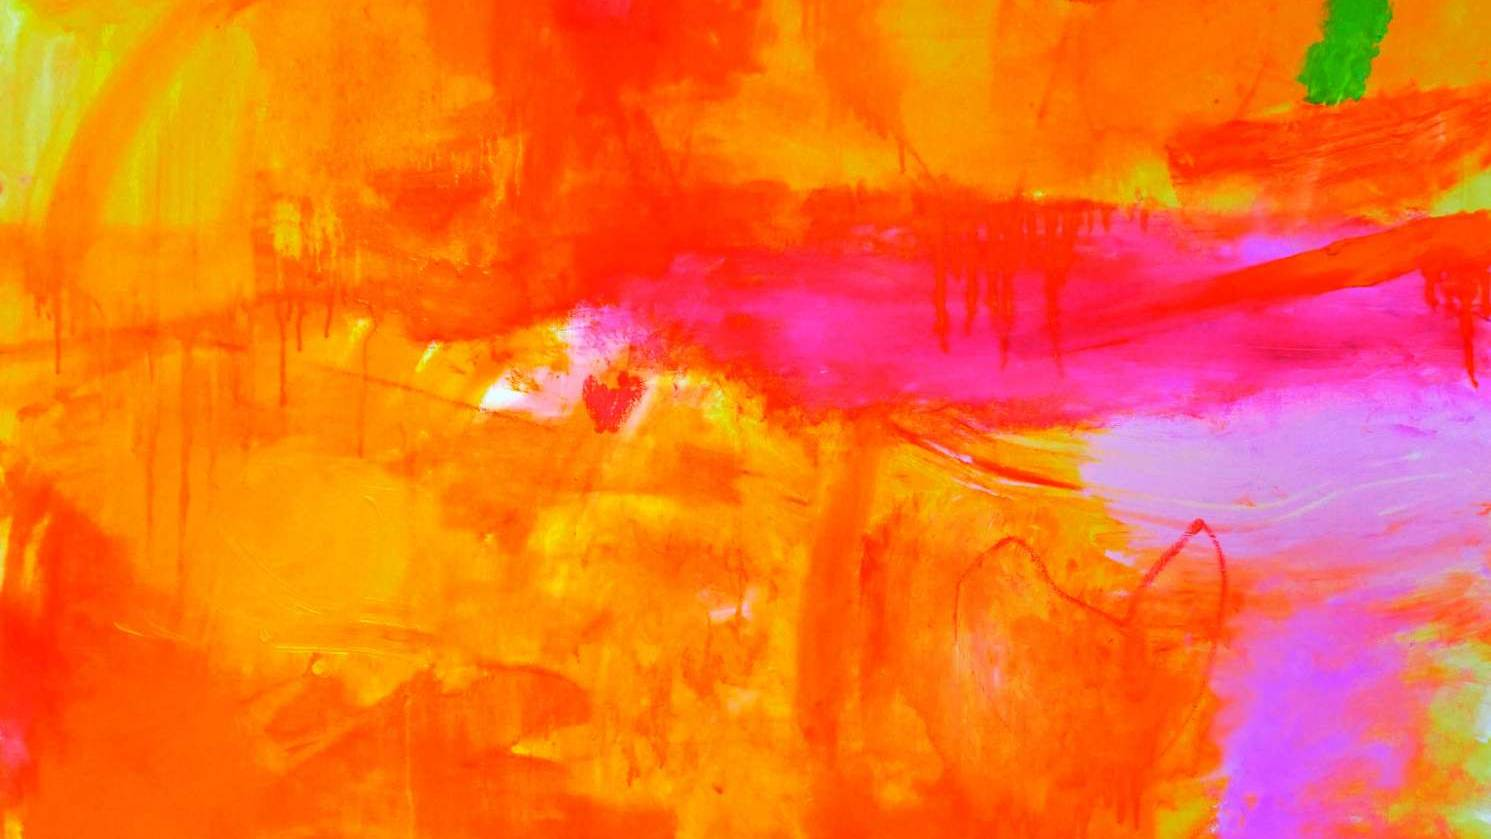 'Meditations on Colour' by Alison McWhirter